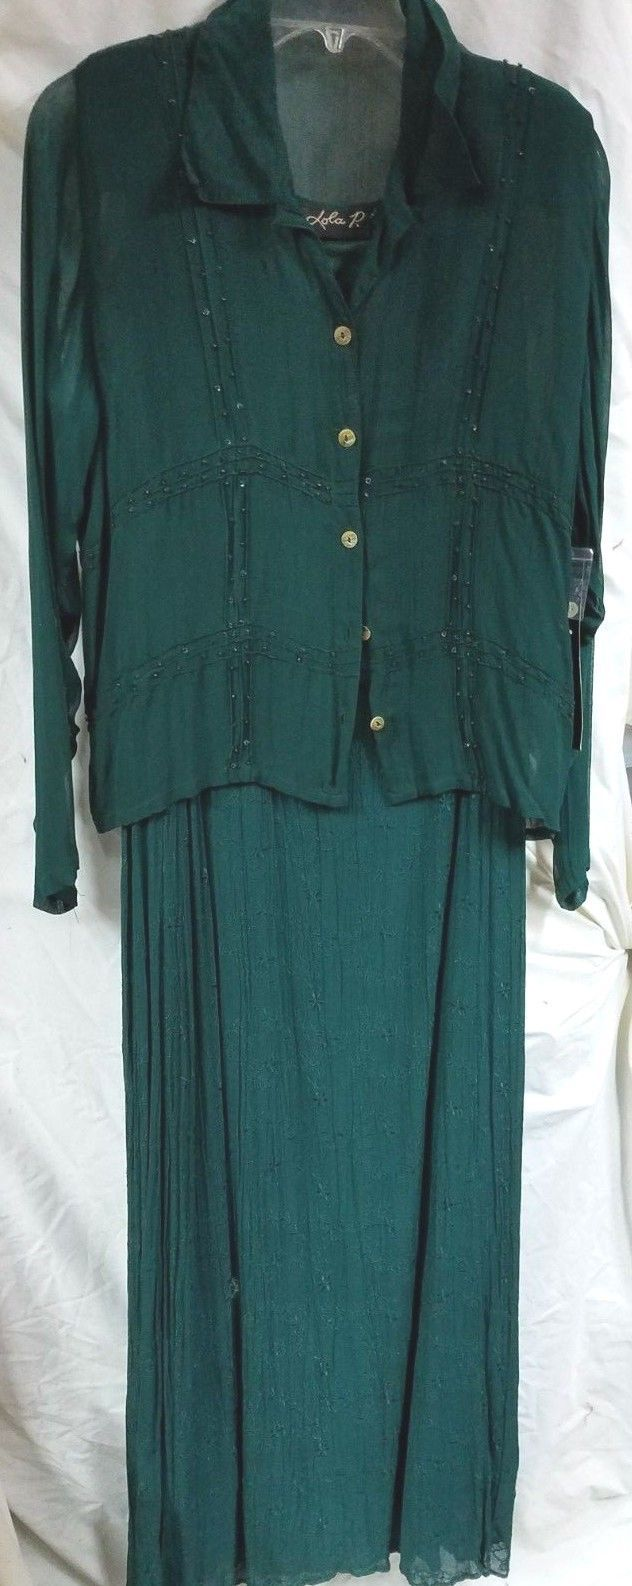 Primary image for Lola P Long Embroidered Sleeveless Dress Long Sleeve Sheer Jacket Size M Dk Grn